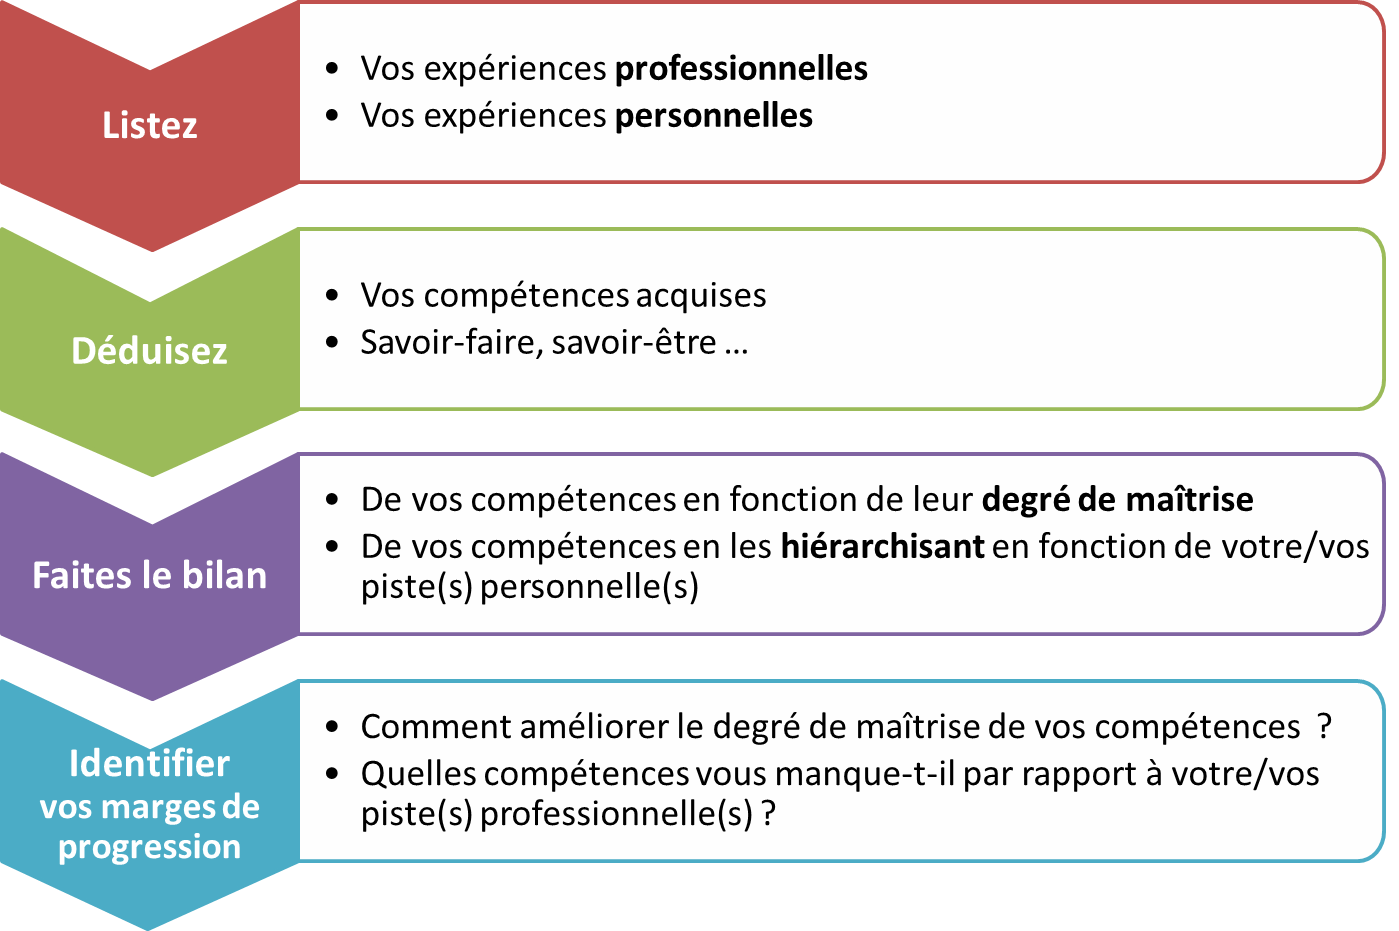 competences acquises cv pour faire du menage